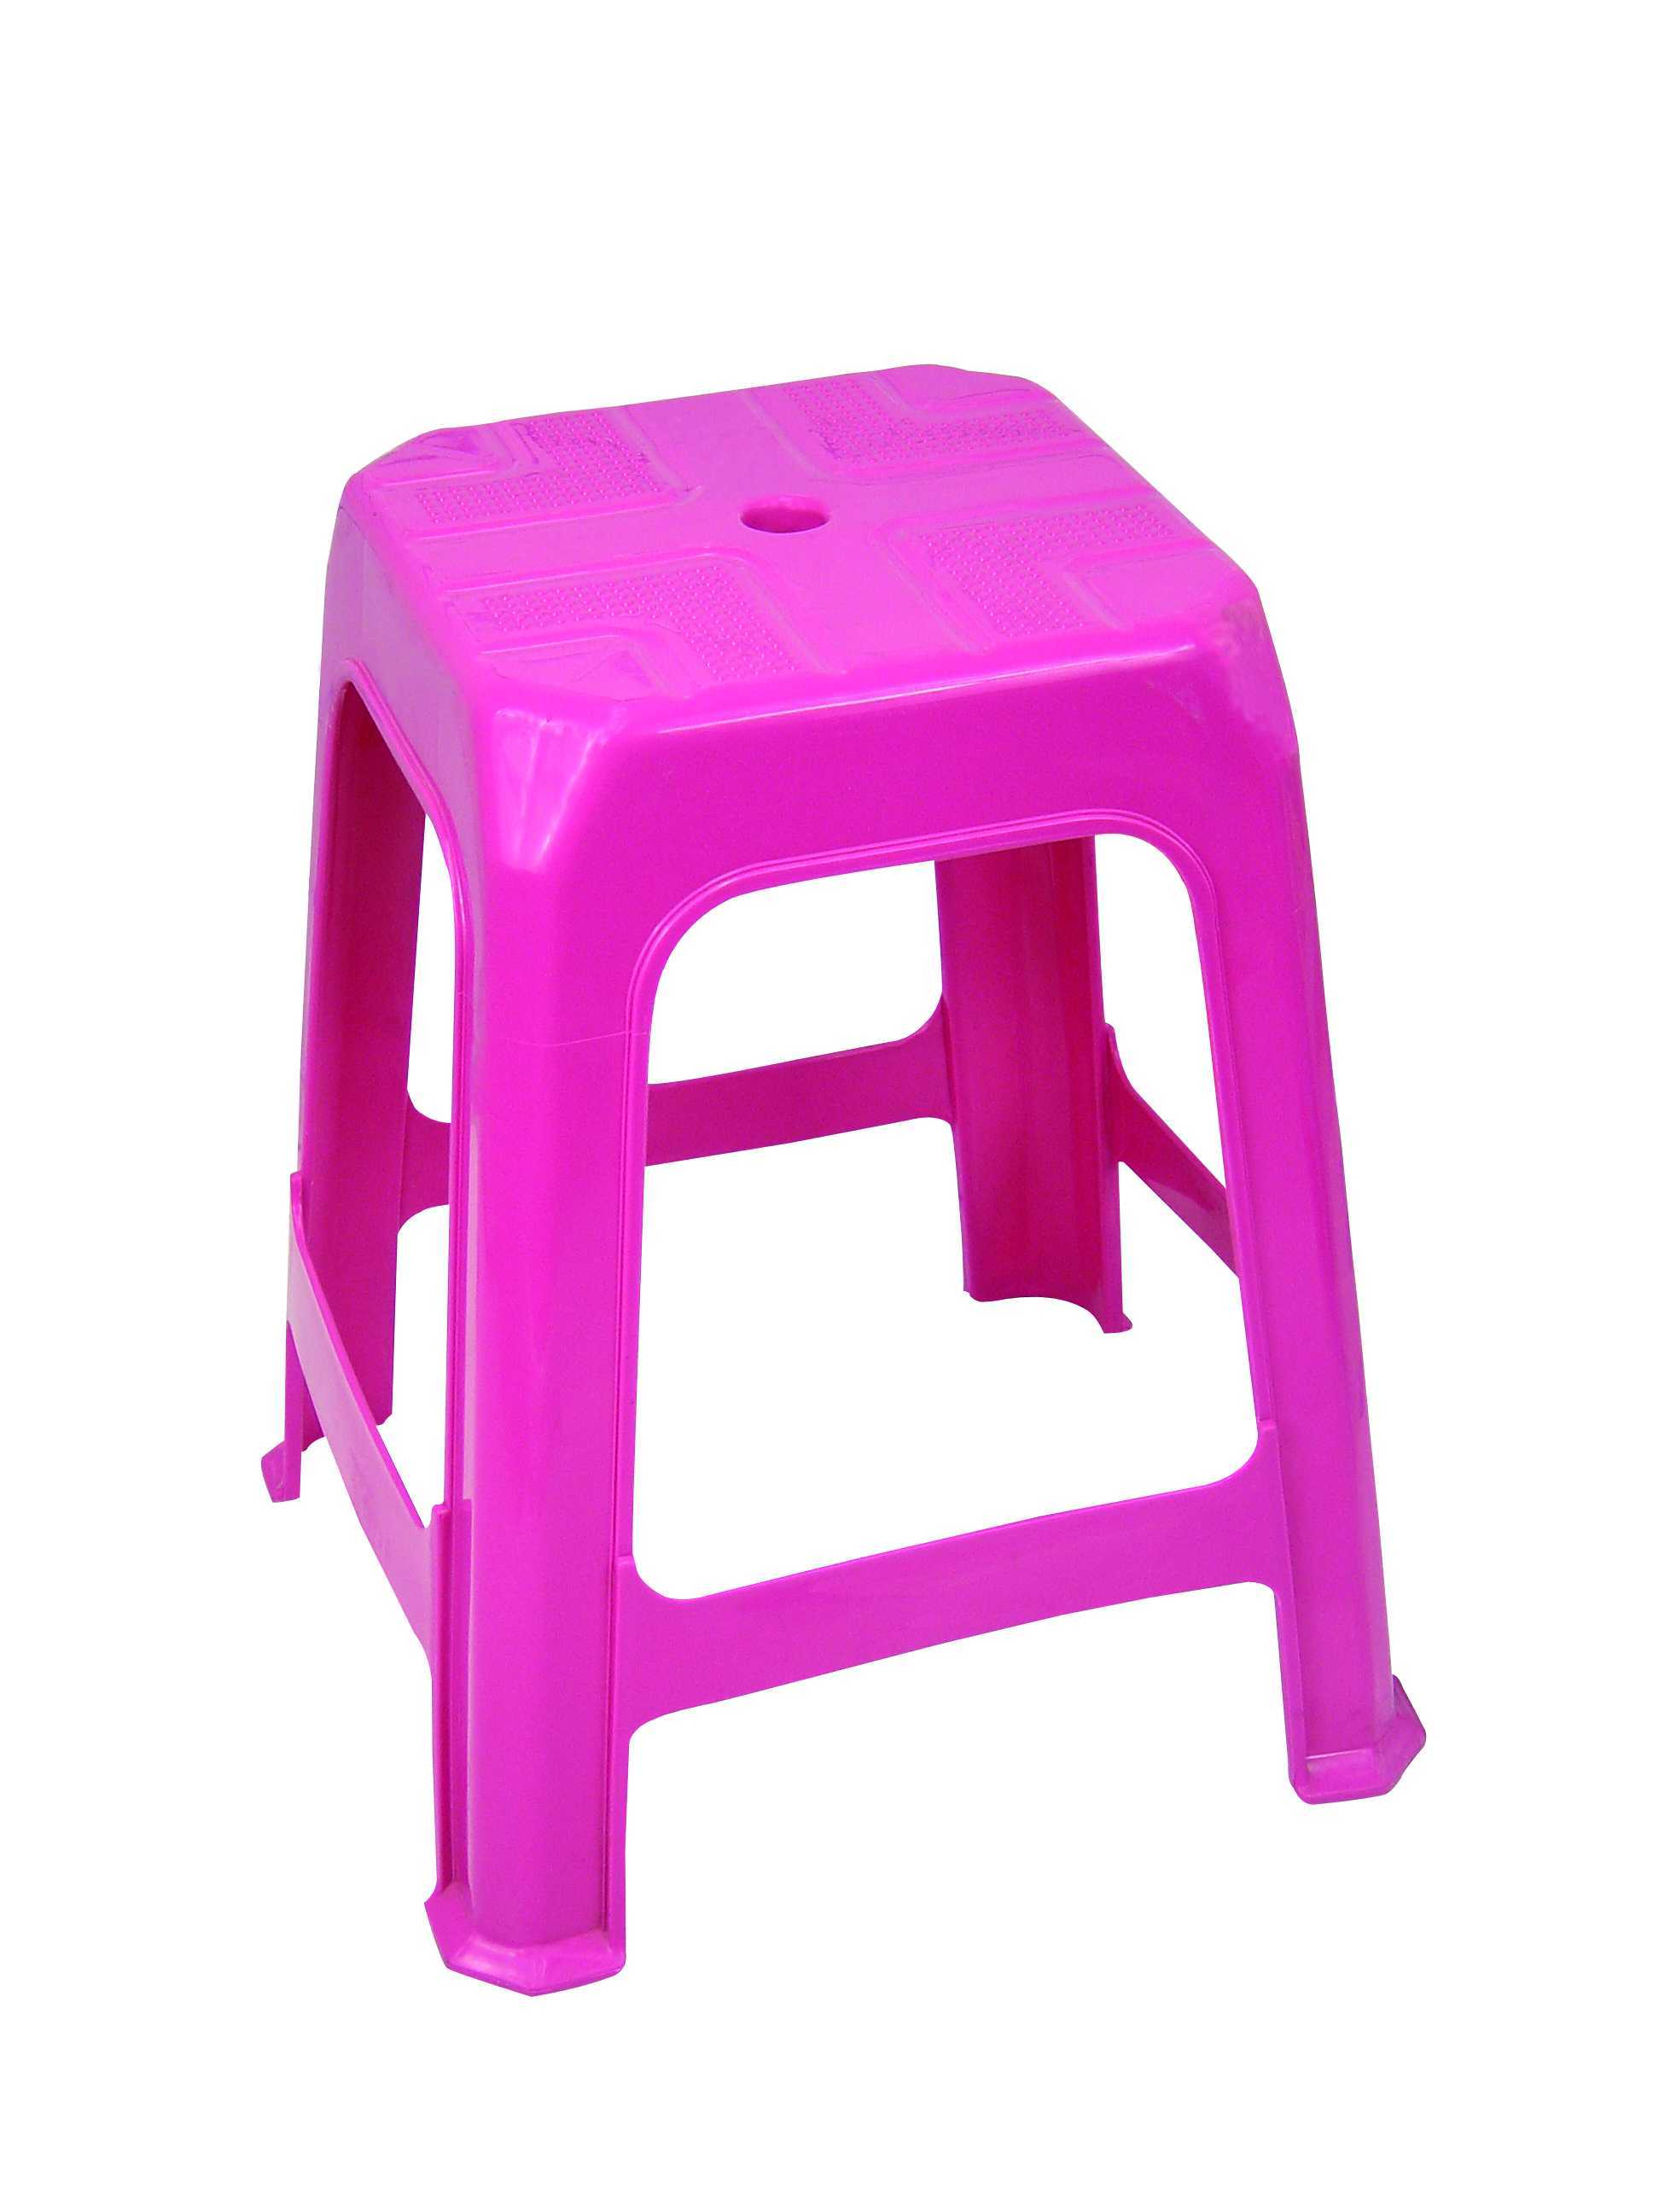 Stool Chair China High Stool Chair Plastic Stool China High Stool